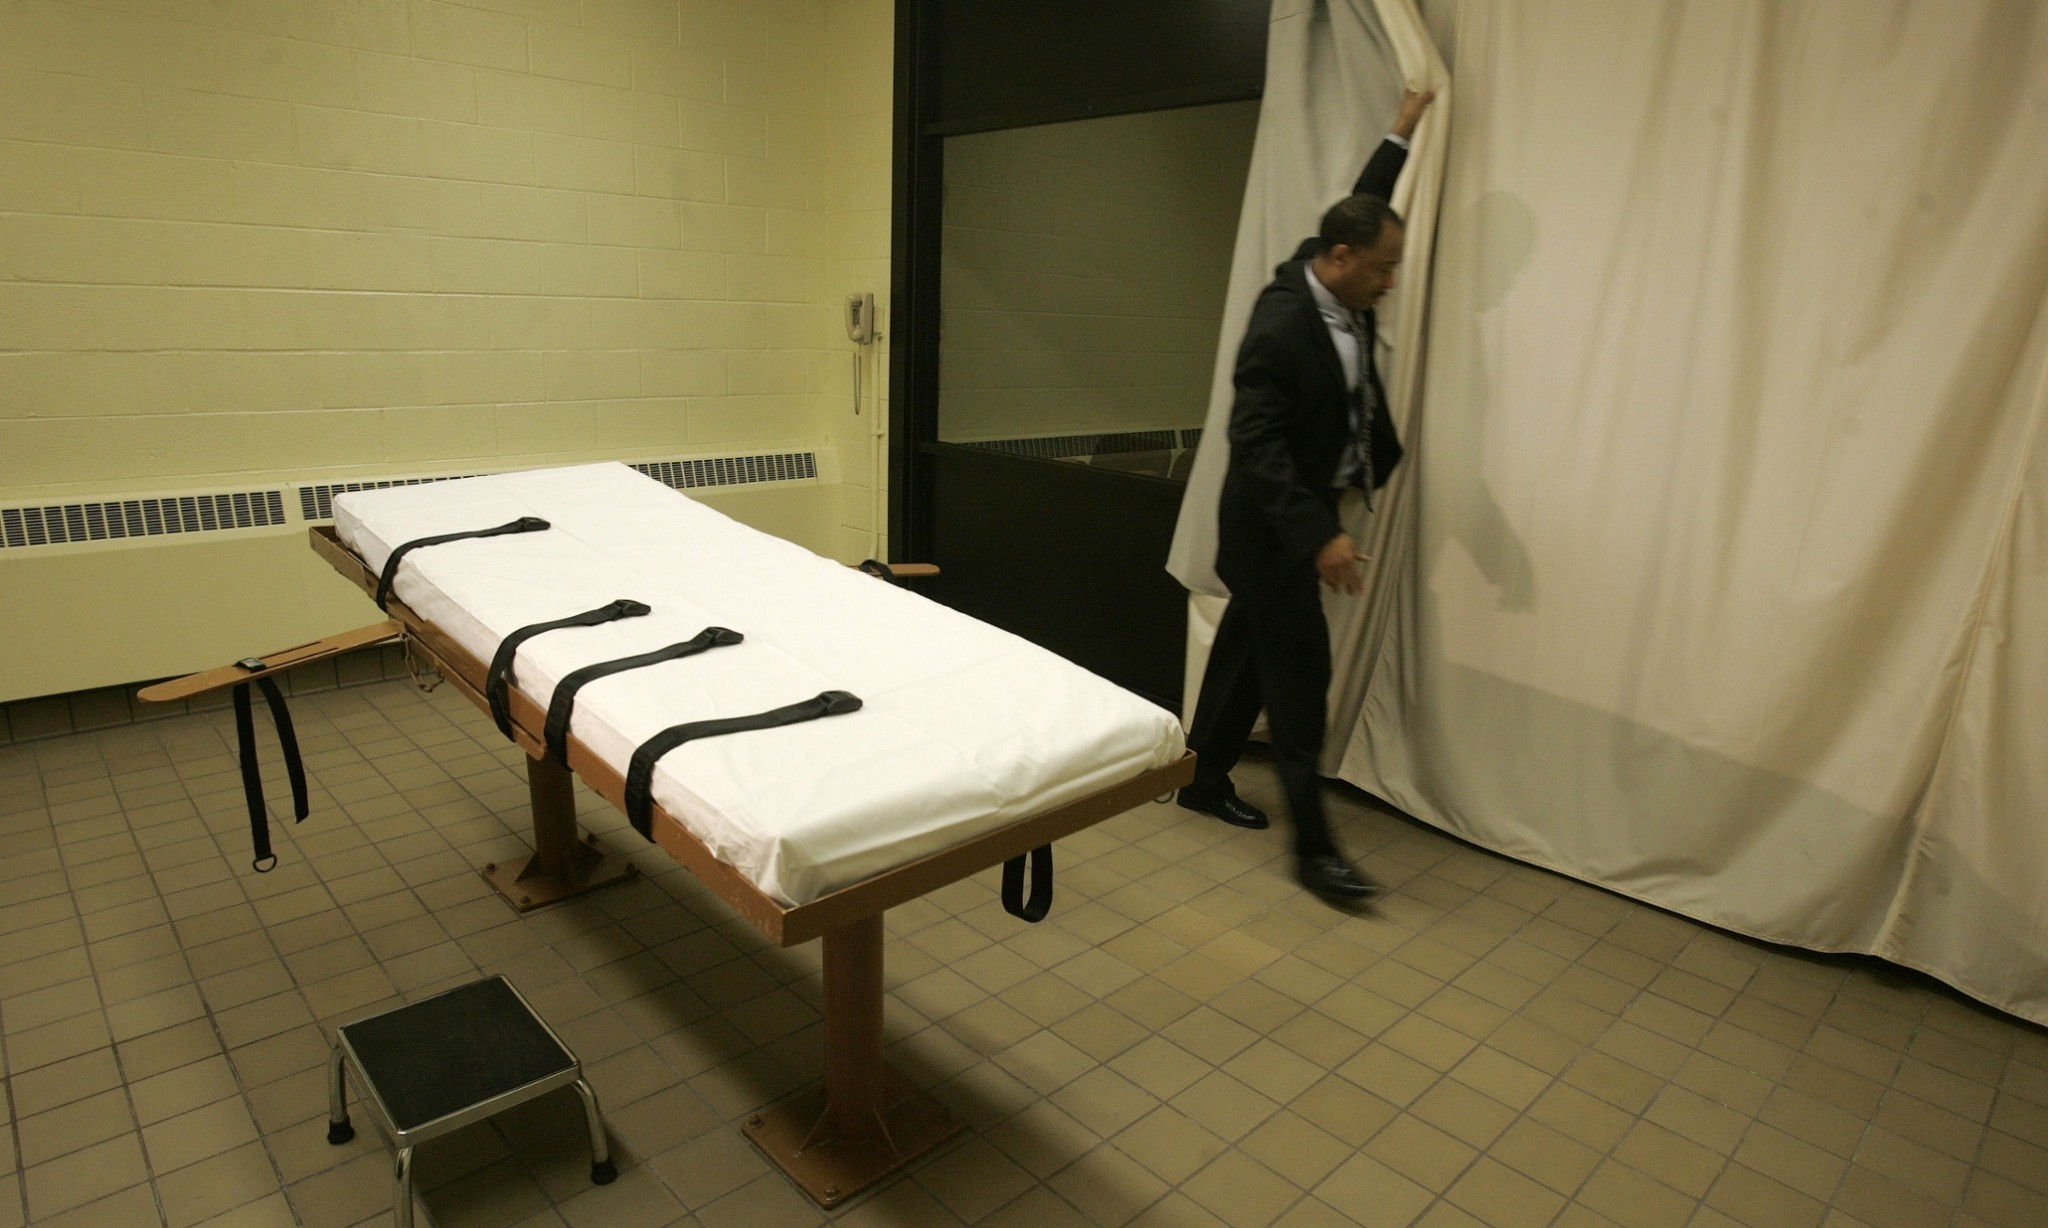 Ohio Republicans push law to keep all details of executions secret